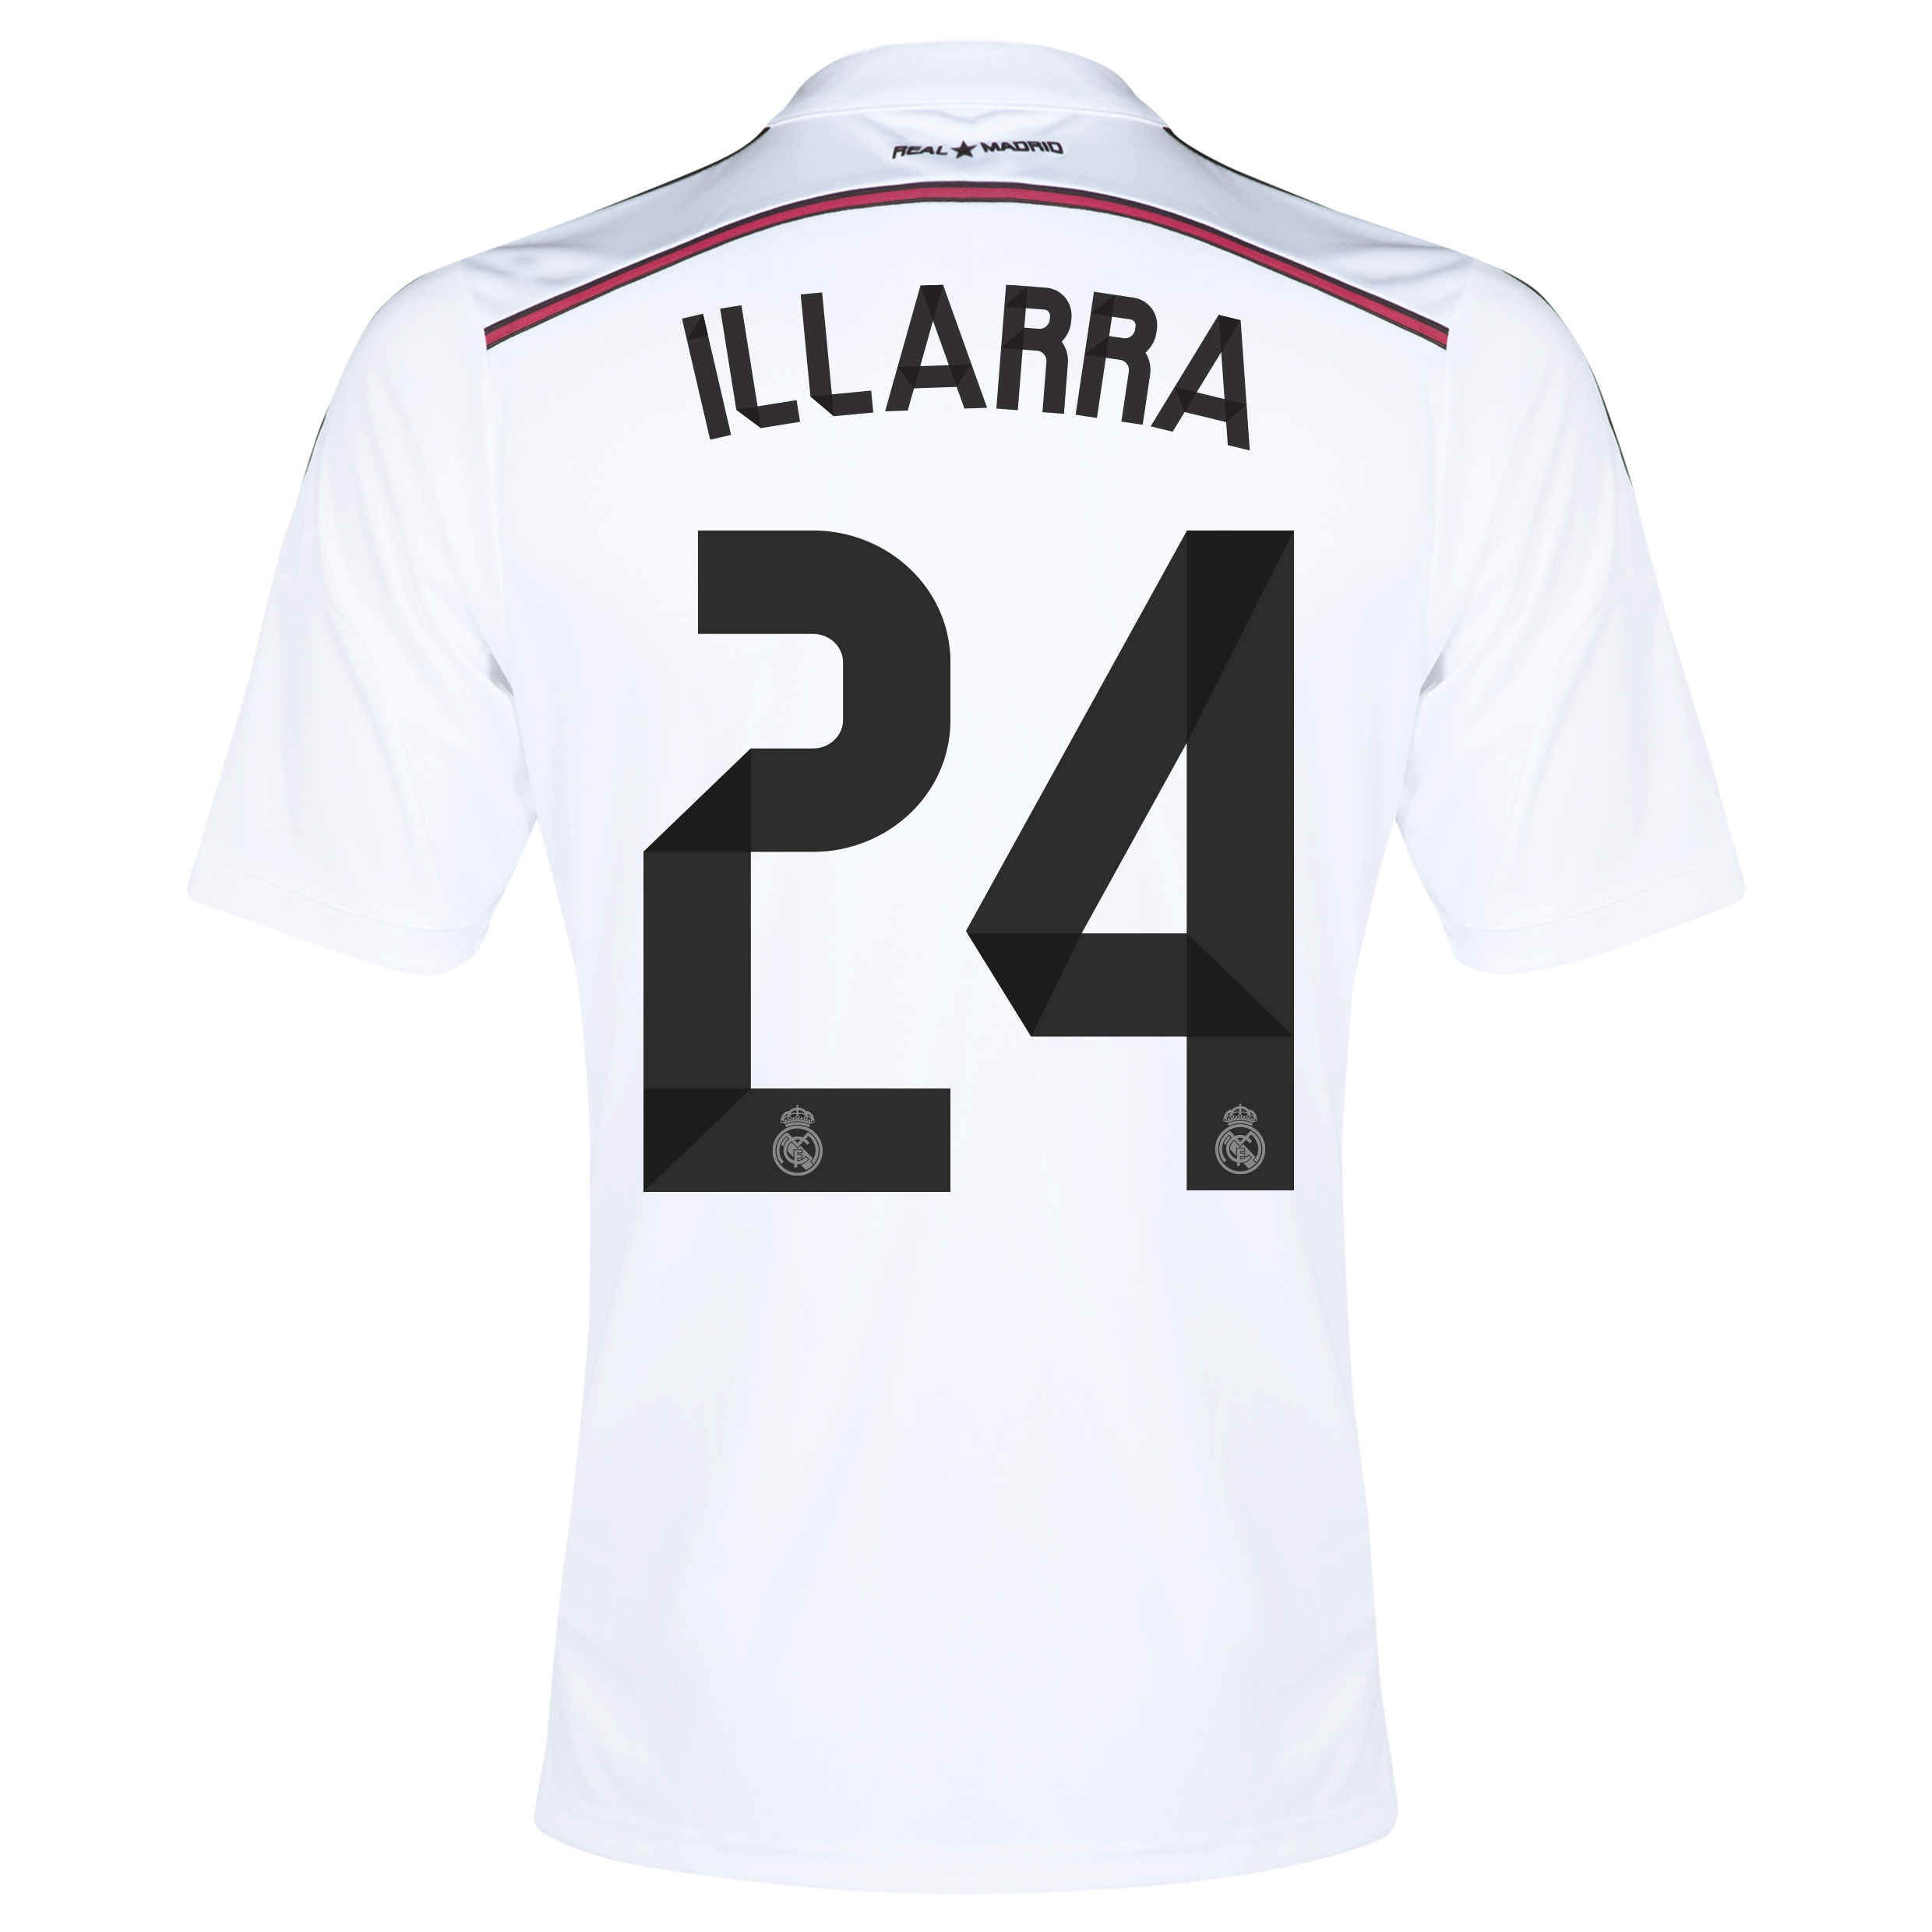 Real Madrid Home Shirt 2014/15 with Illarra 24 printing